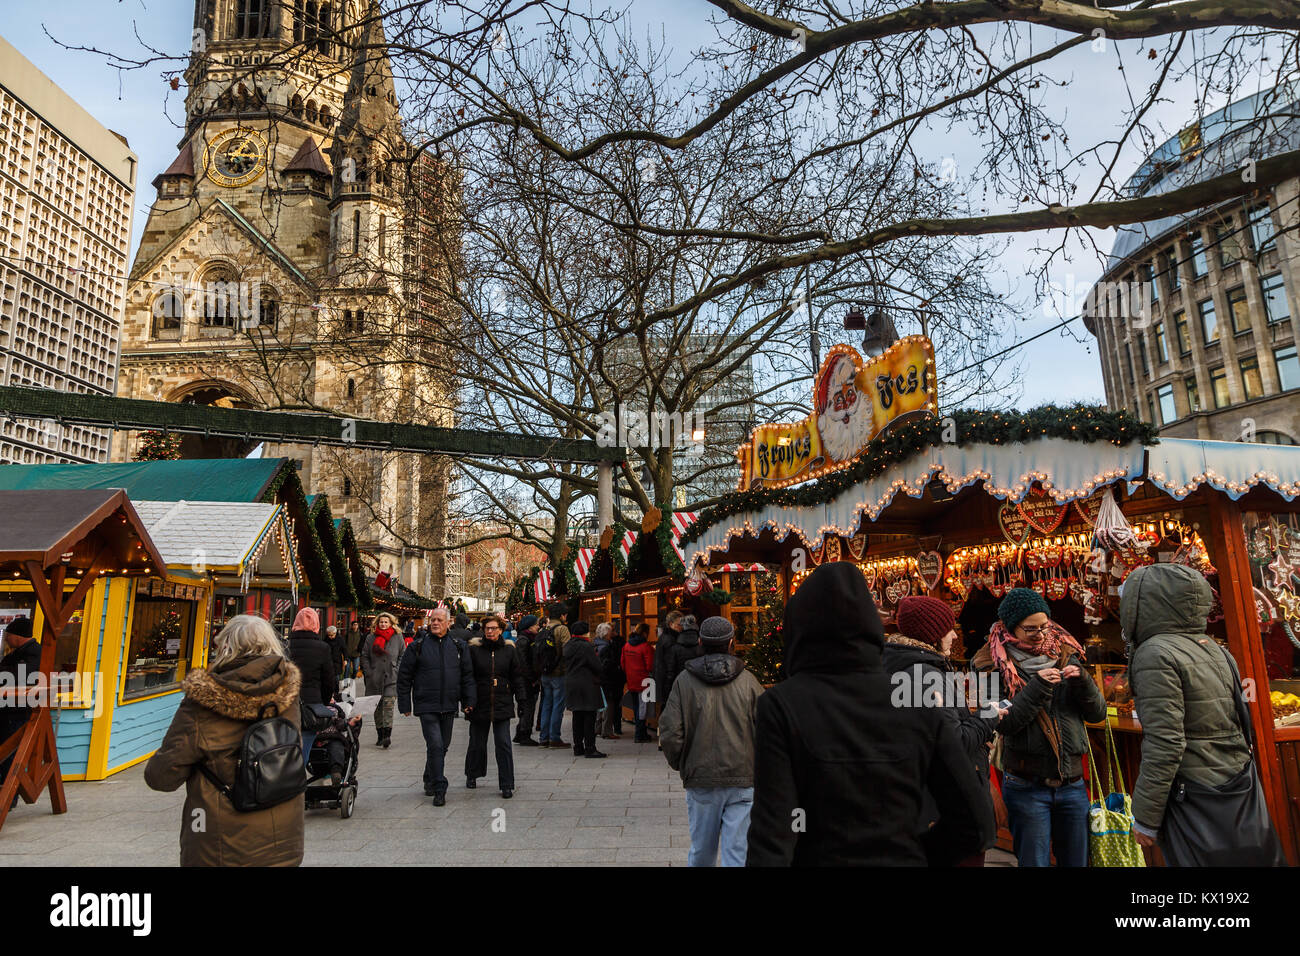 People shopping in the Christmas market, Berlin, Germany - Stock Image